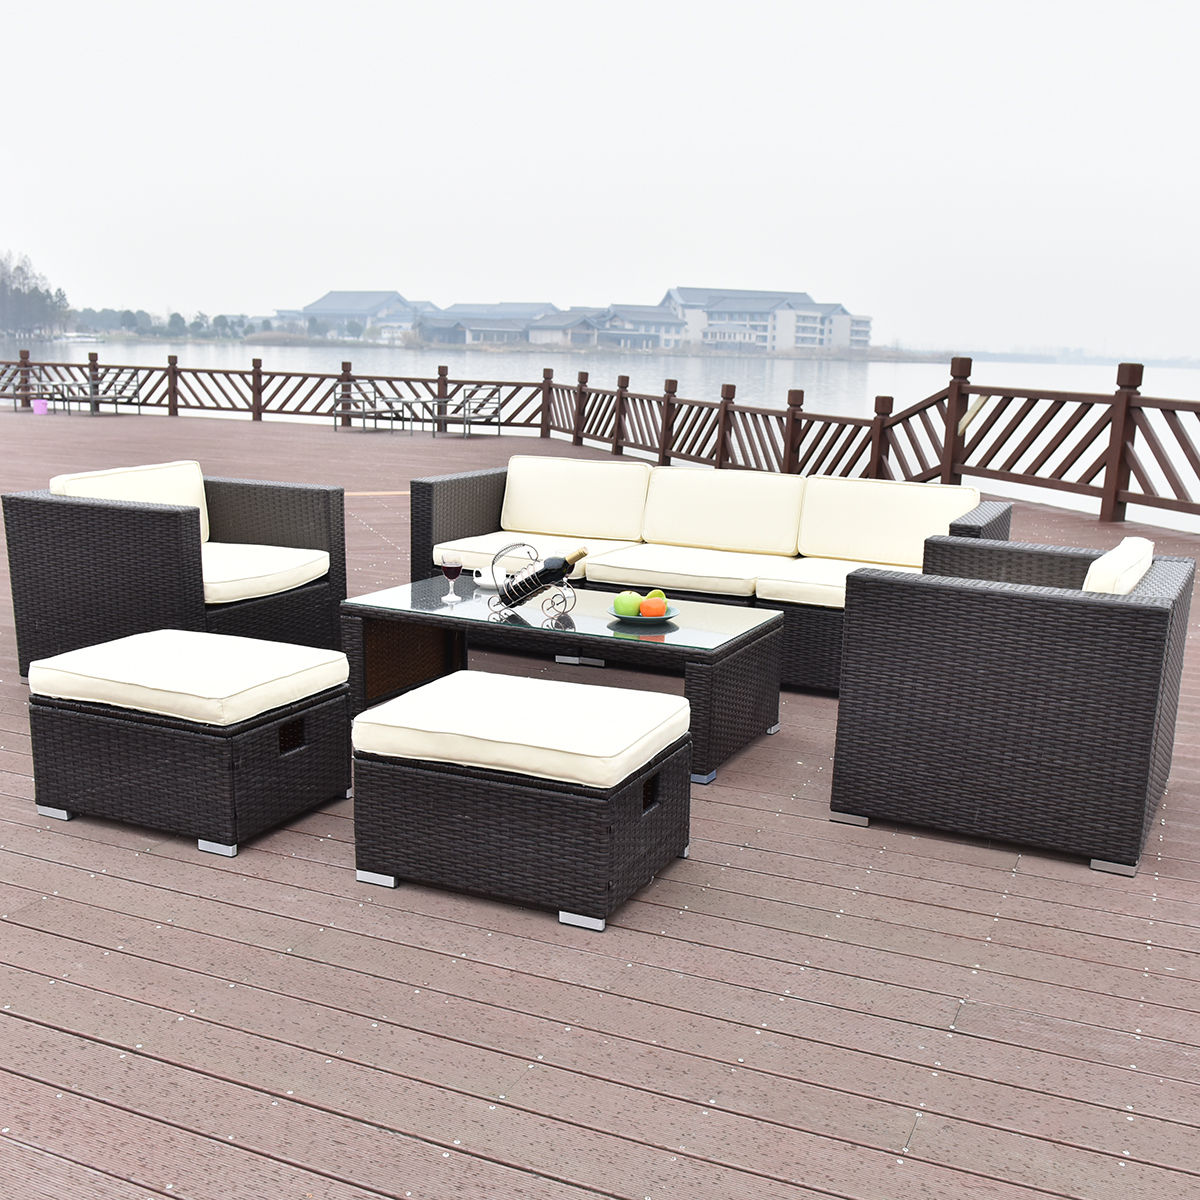 Costway 8 PCS Outdoor Patio Rattan Wicker Furniture Set Sofa Cushioned Garden Brown by Costway